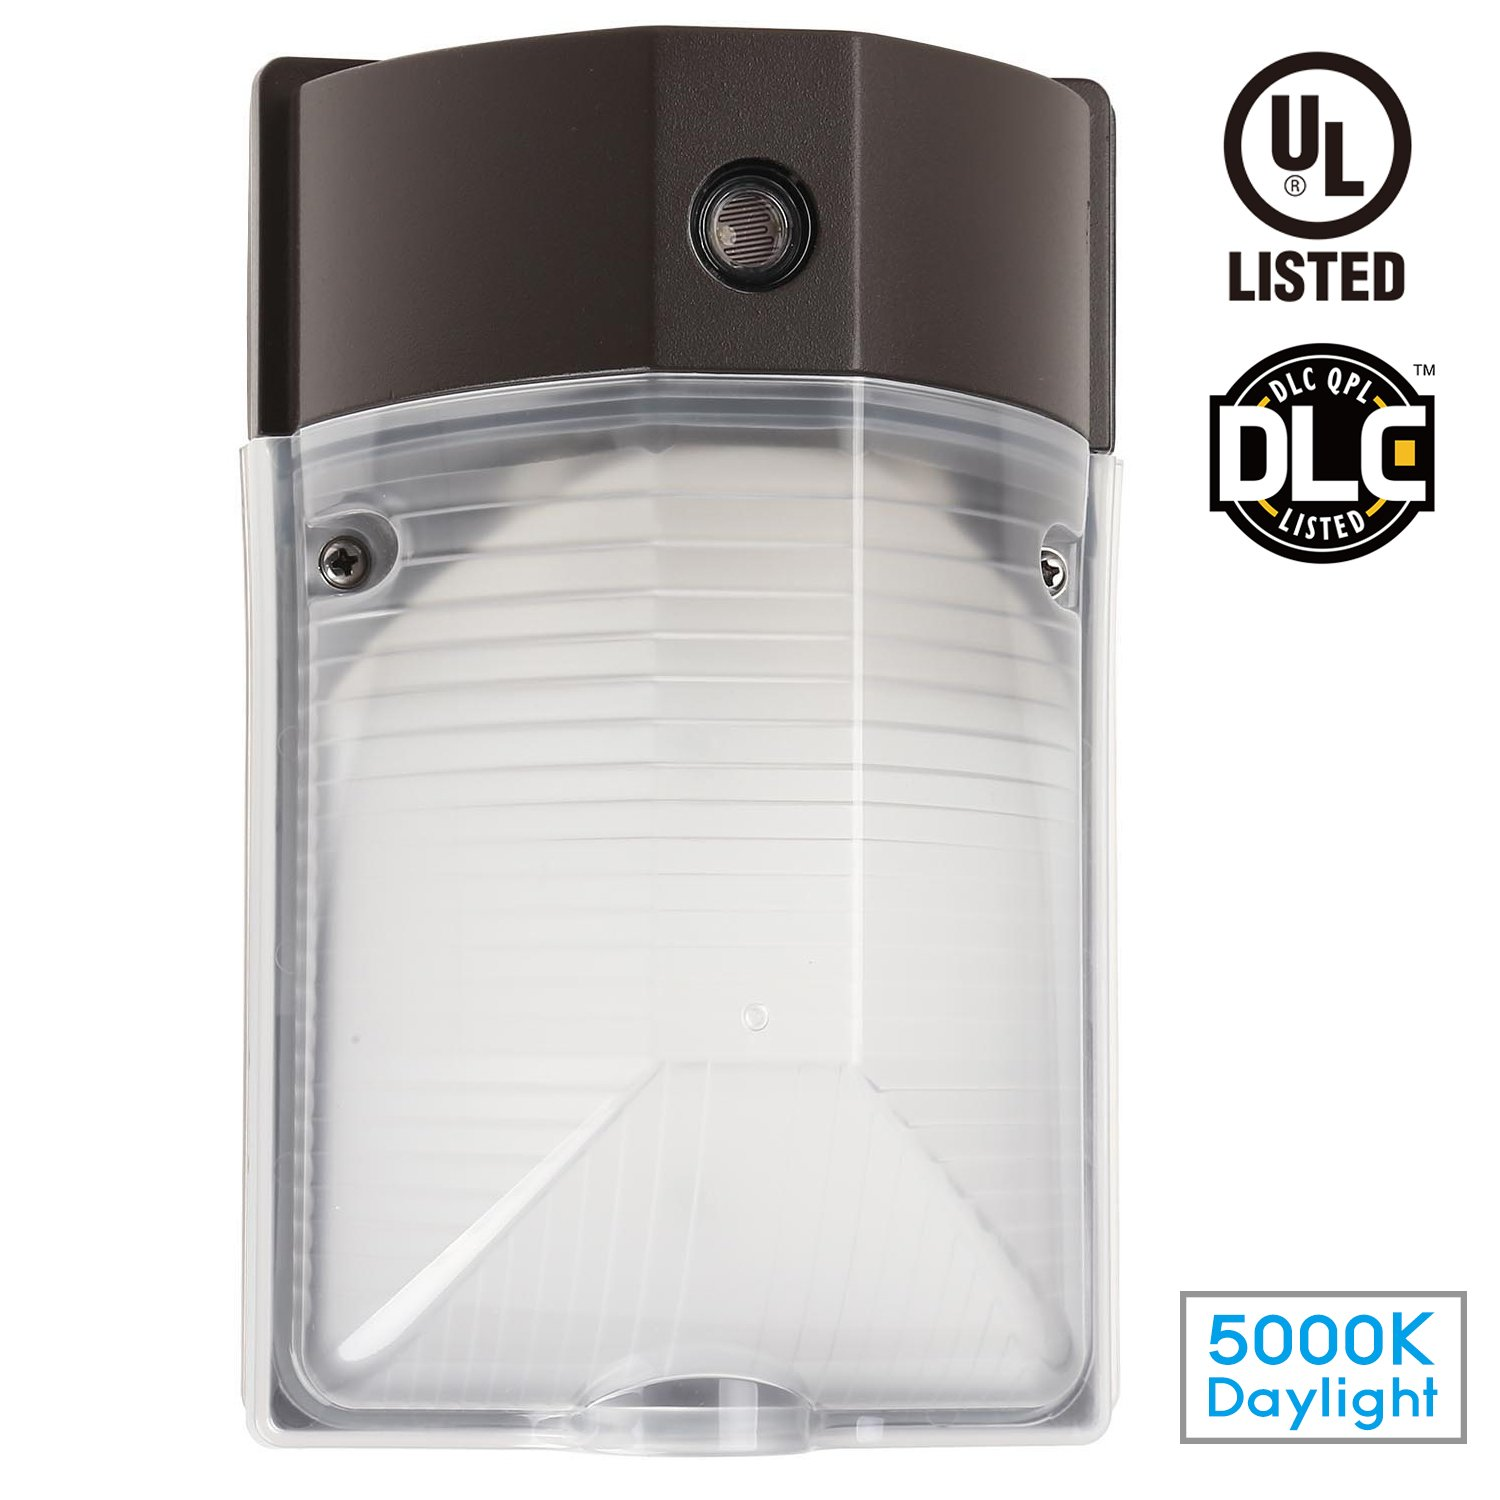 15W LED Wall Mount Light PHOTOCELL Included, DLC & UL-Listed Dusk to Dawn Wall Pack, 100-150W MH and HPS Replacement, 1600lm, 120V, Daylight, Outdoor/Entrance Security Light (5-Year Warranty)